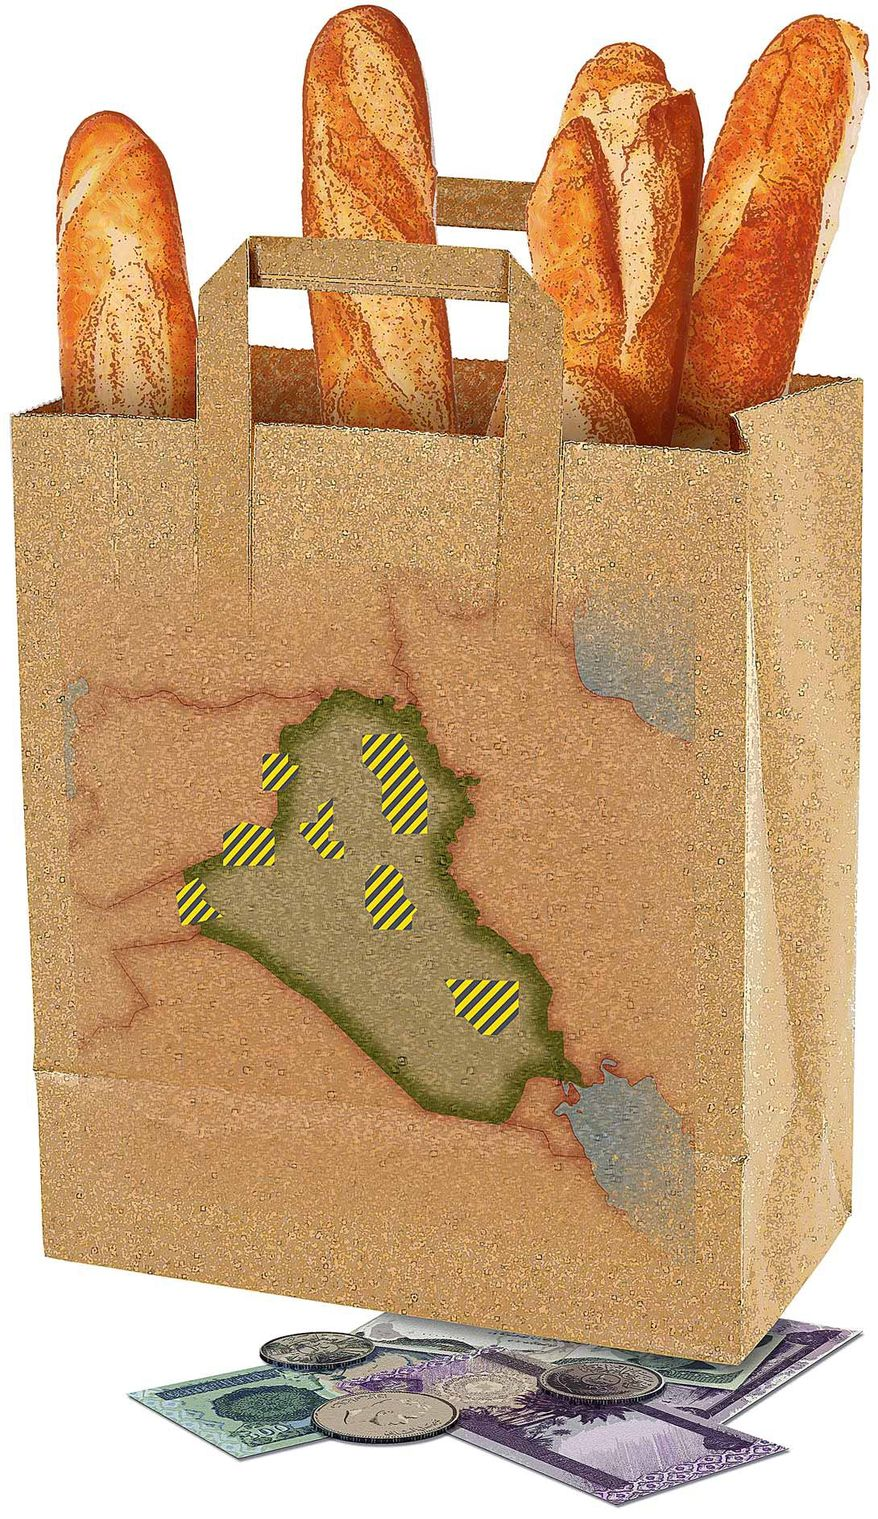 Rebuilding the Iraqi Economy Illustration by Greg Groesch/The Washington Times